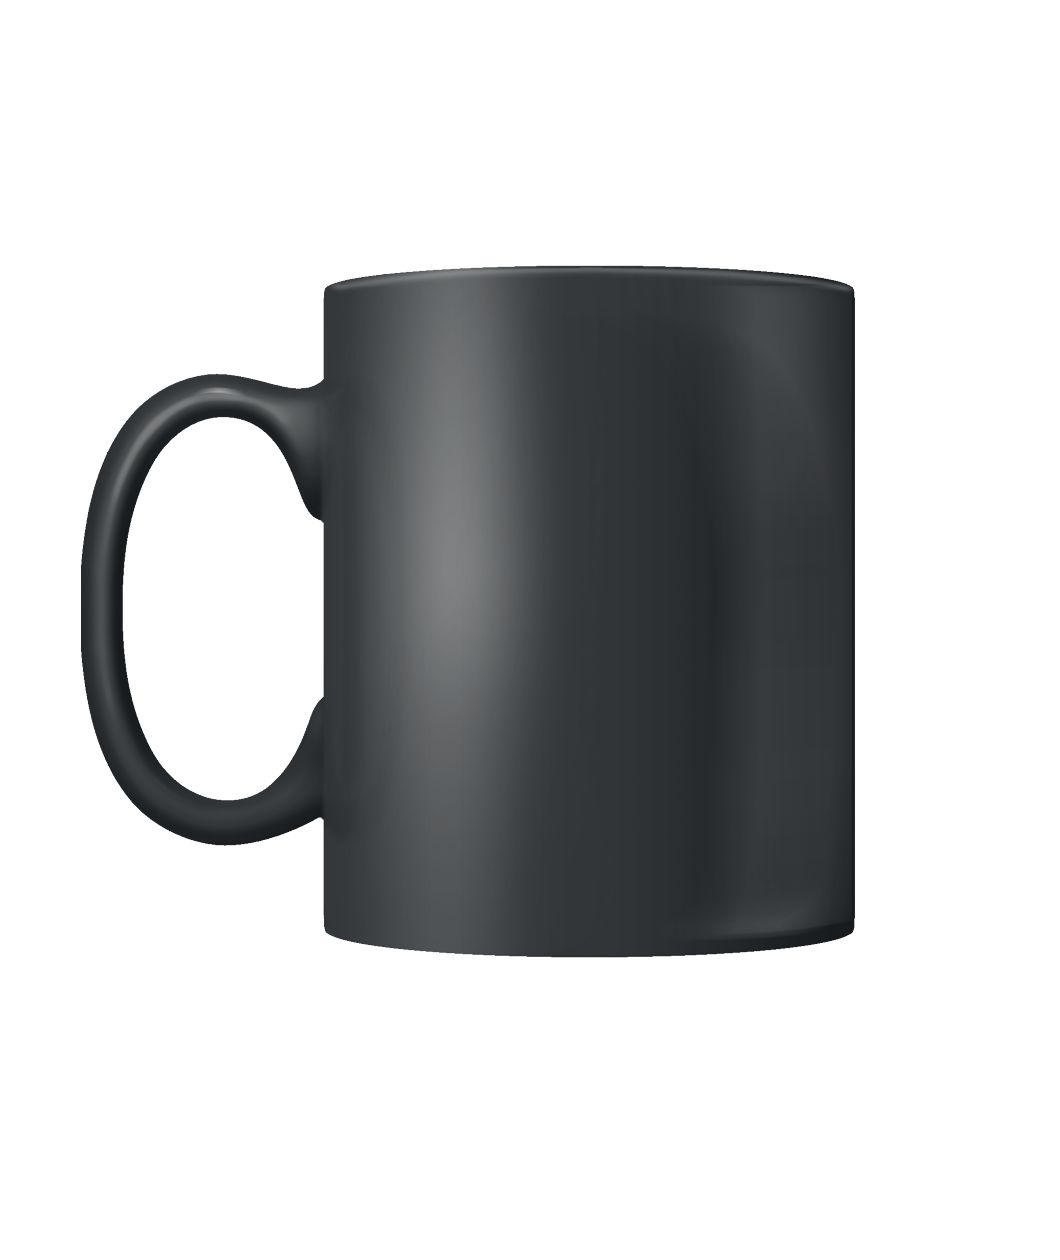 Black Coffee Mug. Color Coffee Mug